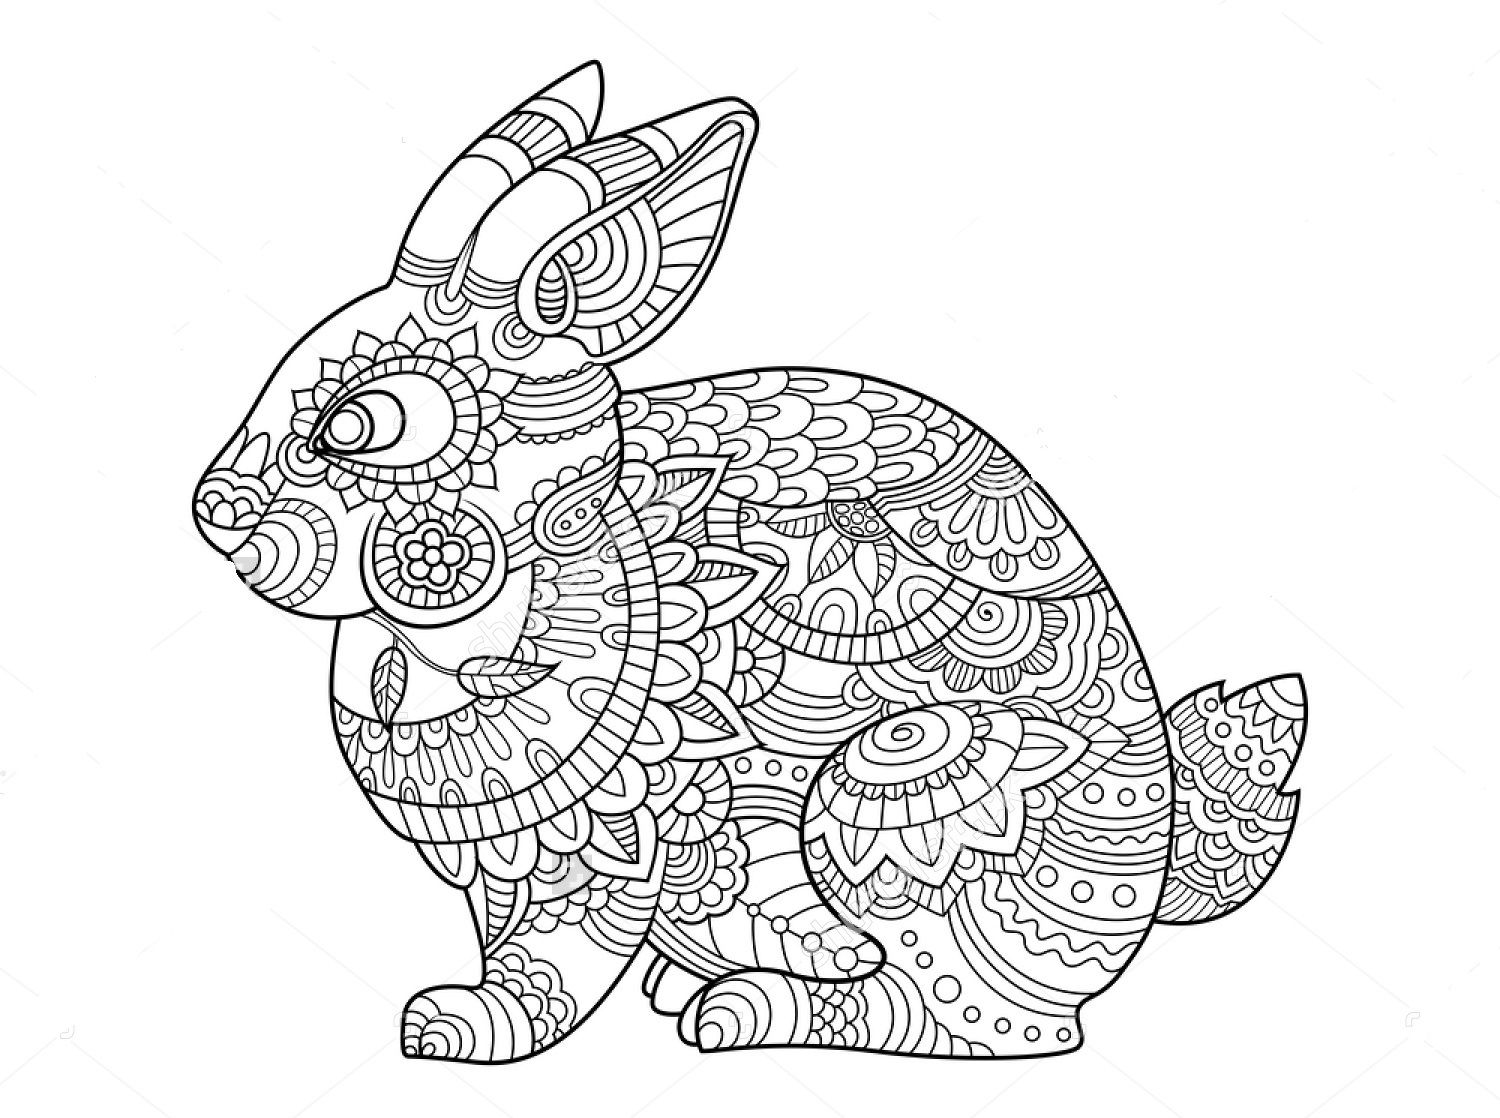 Rabbit zentangle coloring page | Easter | Pinterest | Mandalas